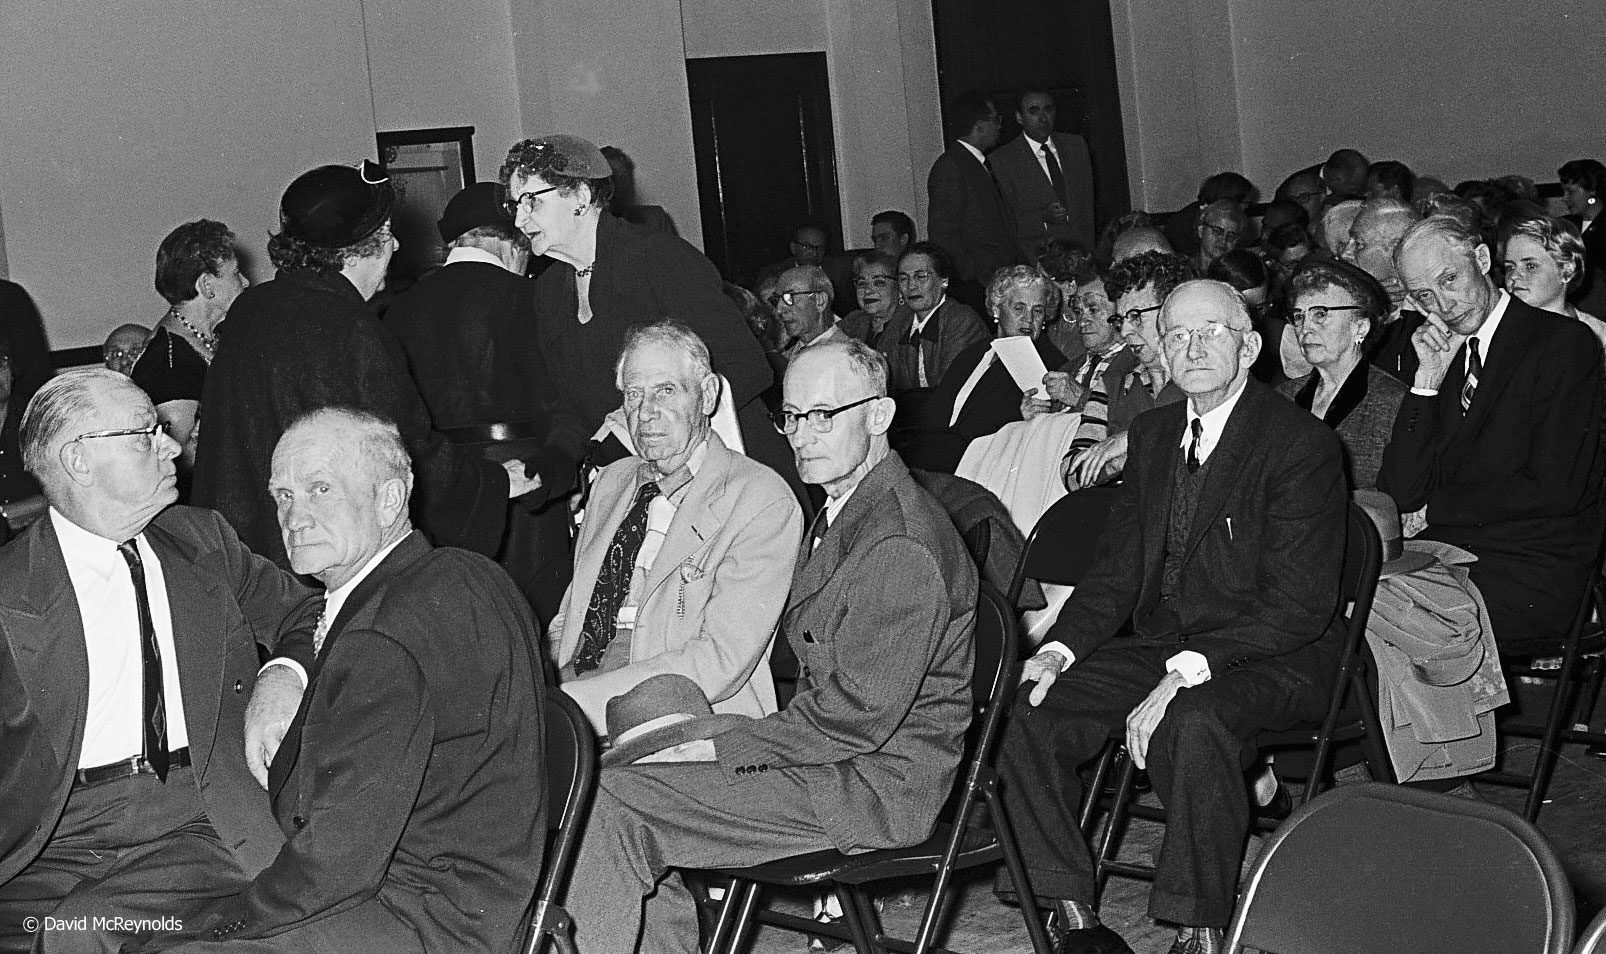 Some of the crowd at the centennial event in Los Angeles (before David moved to NYC). (55-24)